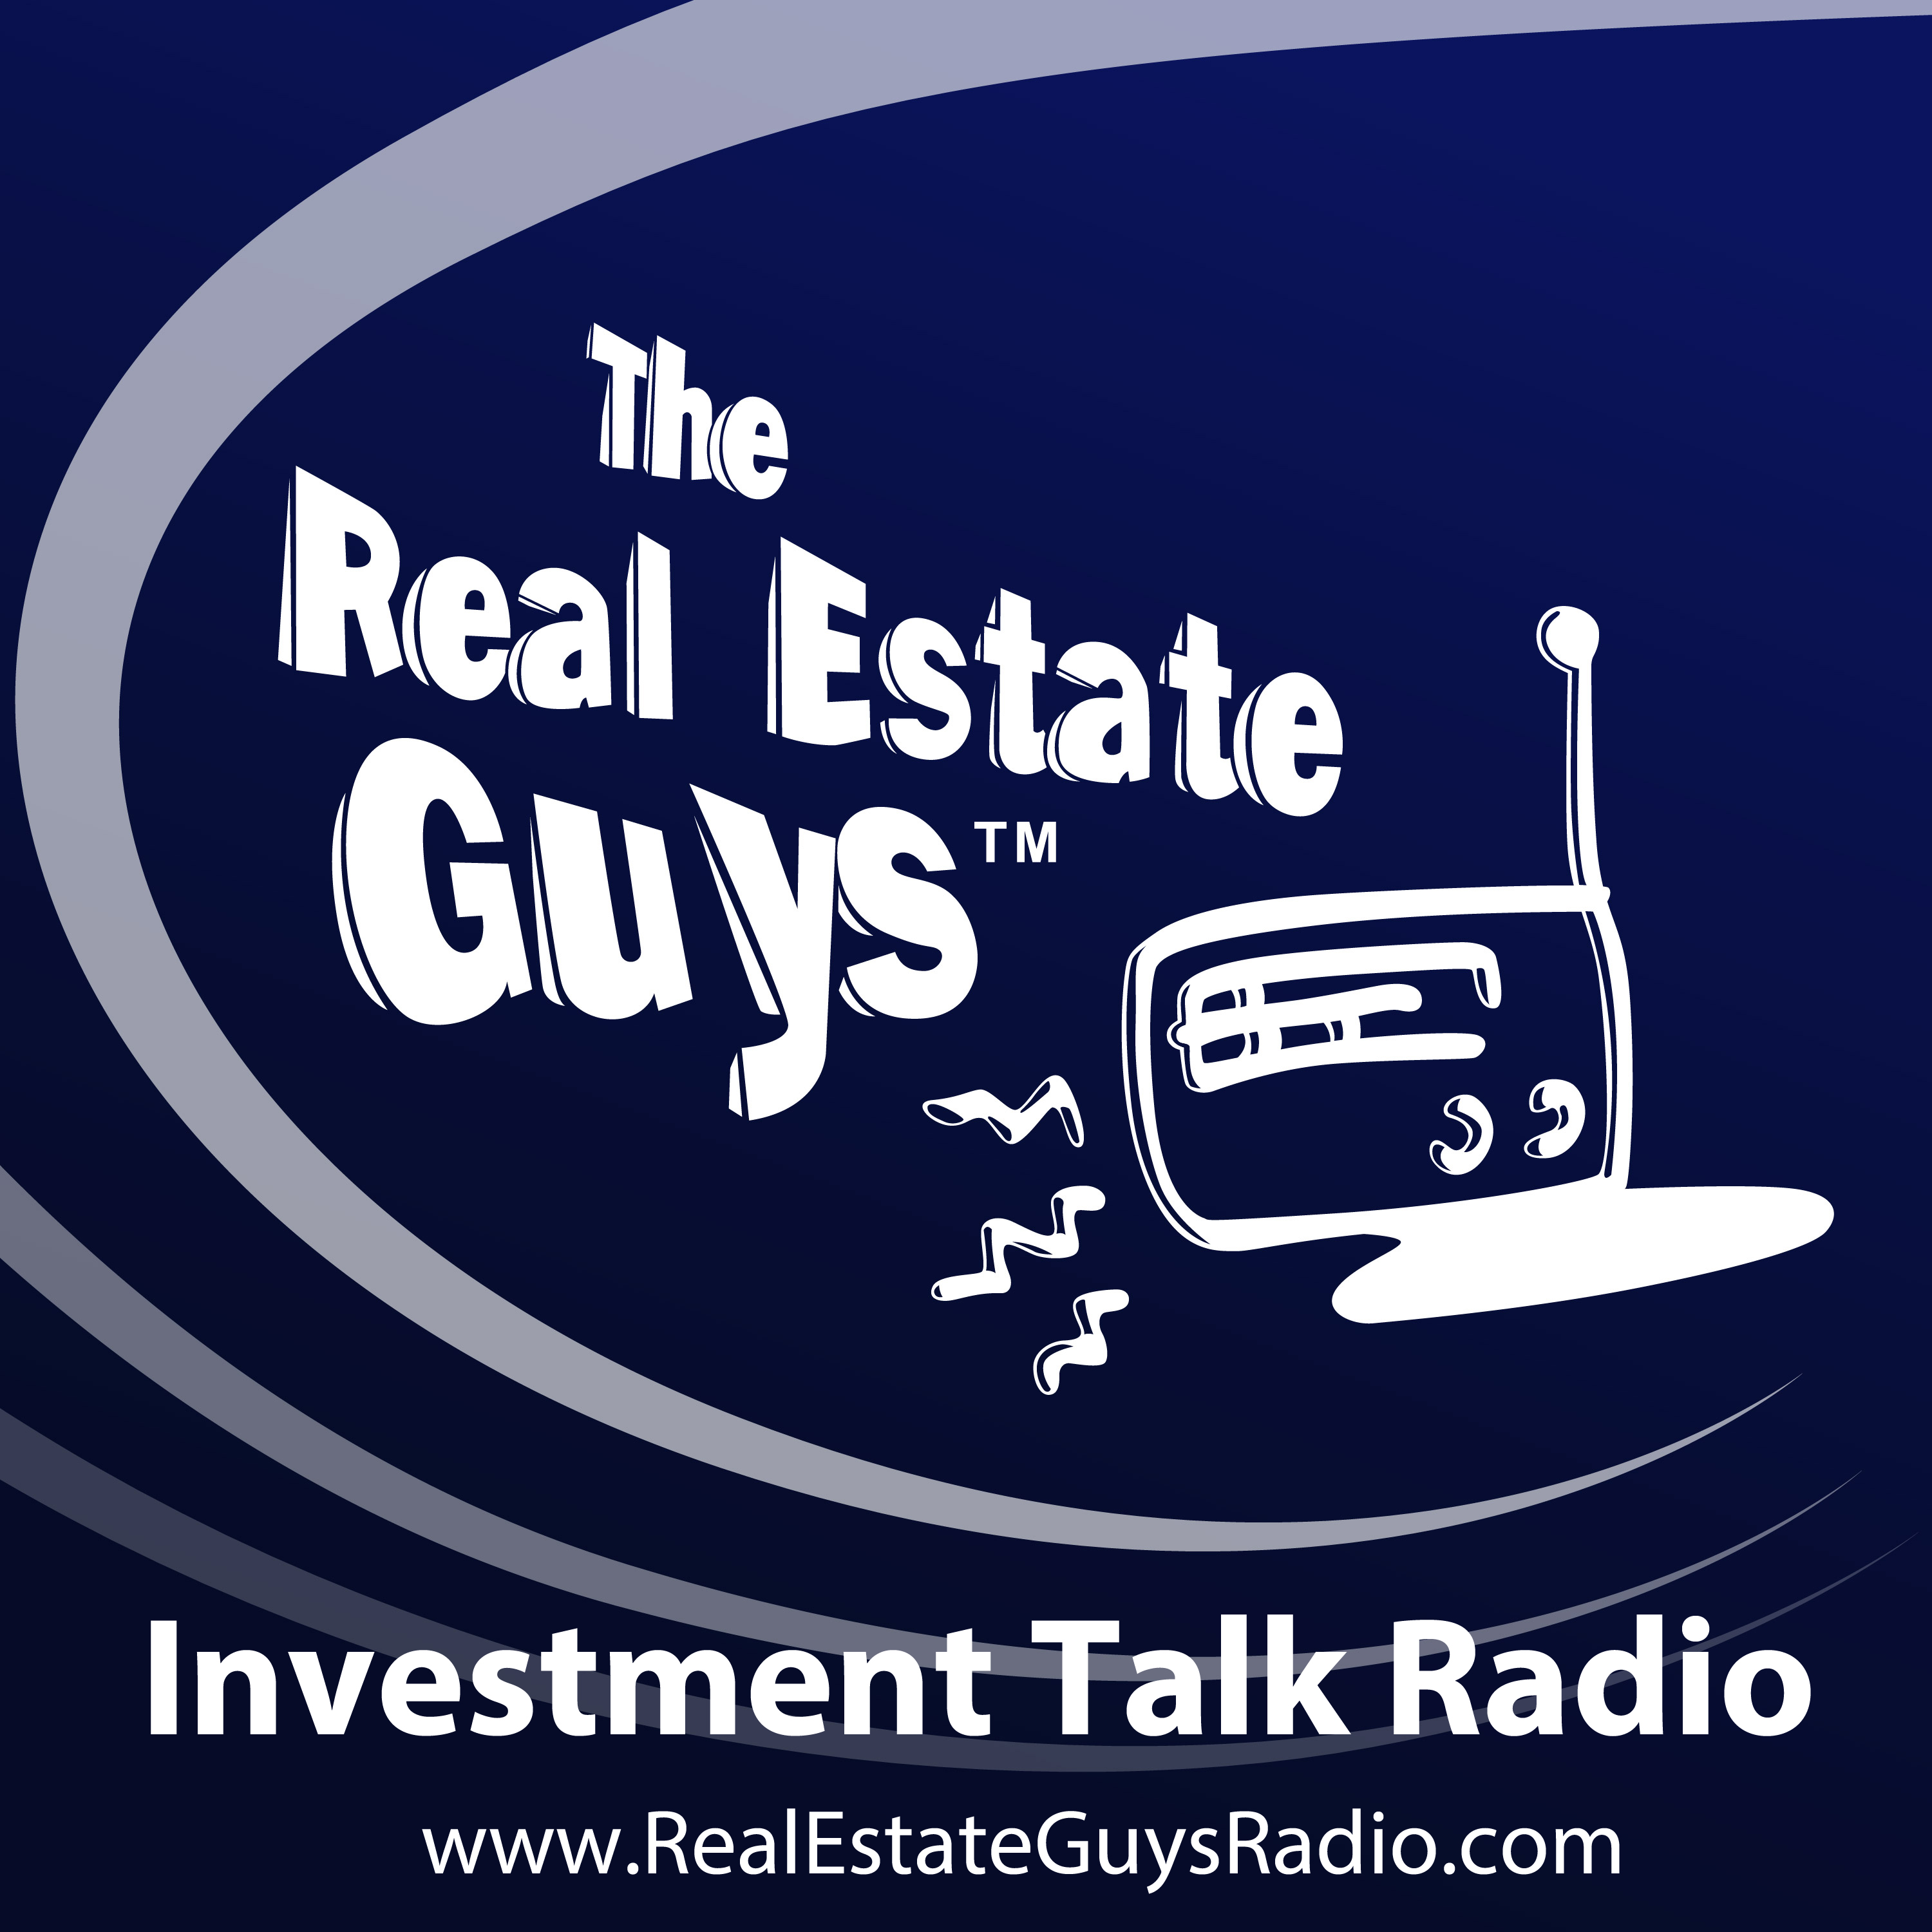 The Real Estate Guys Radio Show - Real Estate Investing Education for Effective Action show art